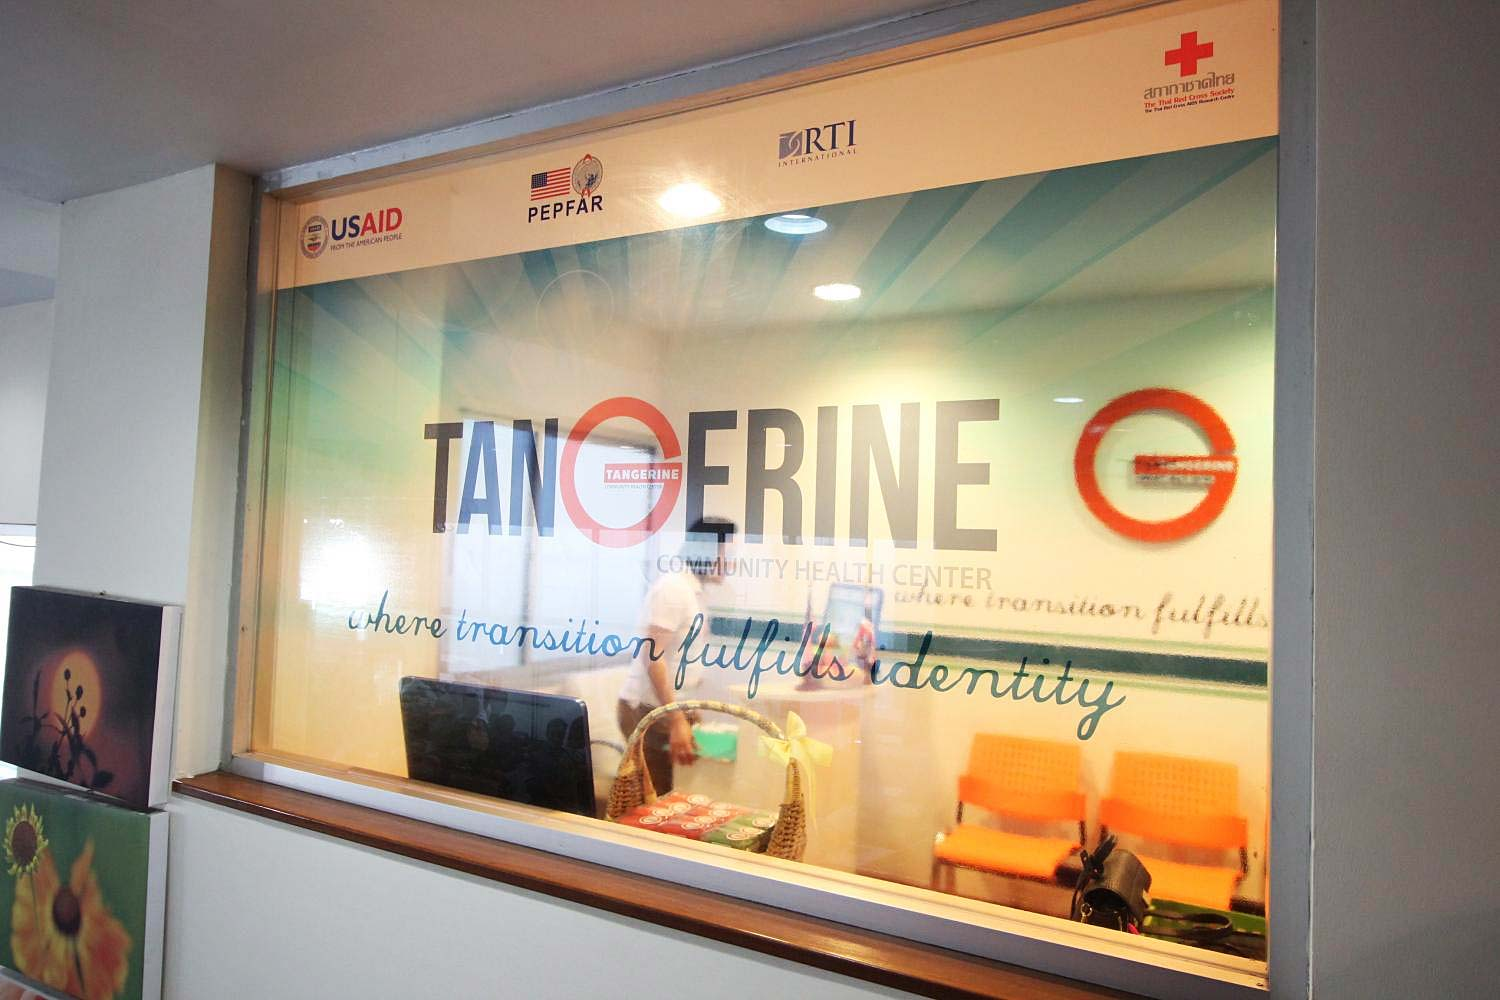 The Tangerine Community Health Centre, Thailand's first clinic to provide trans-specific healthcare and counselling services, now operates at the Thai Red Cross Aids Research Centre. (Photo by Melanin Mahavongtrakul)